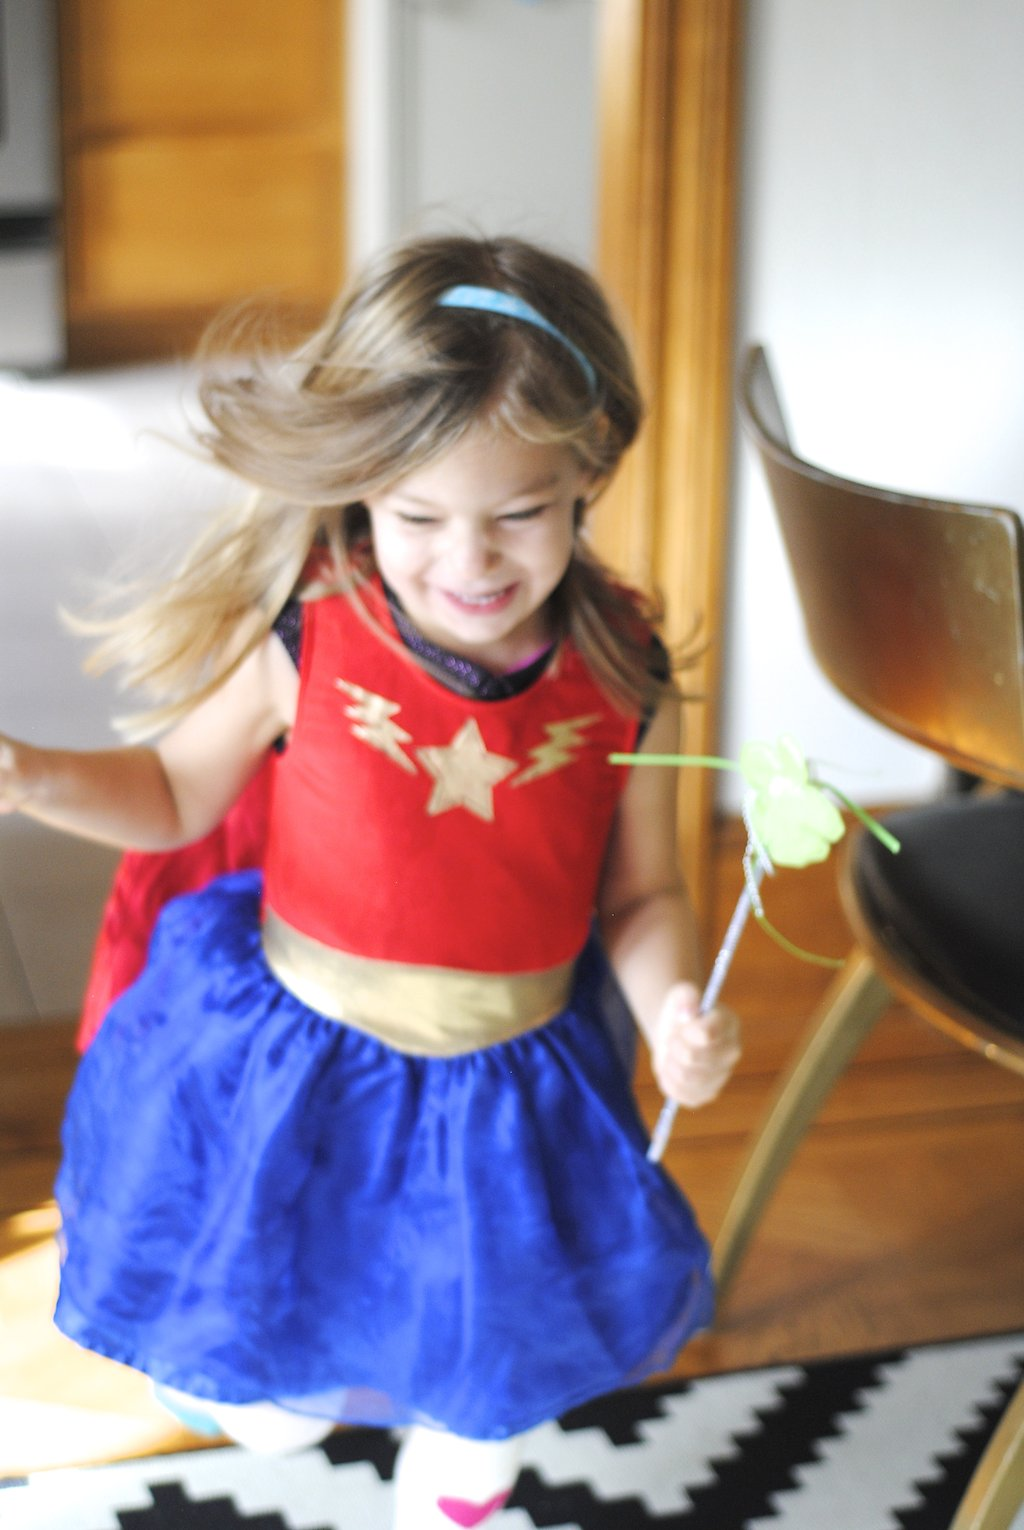 little girl running in superhero outfit